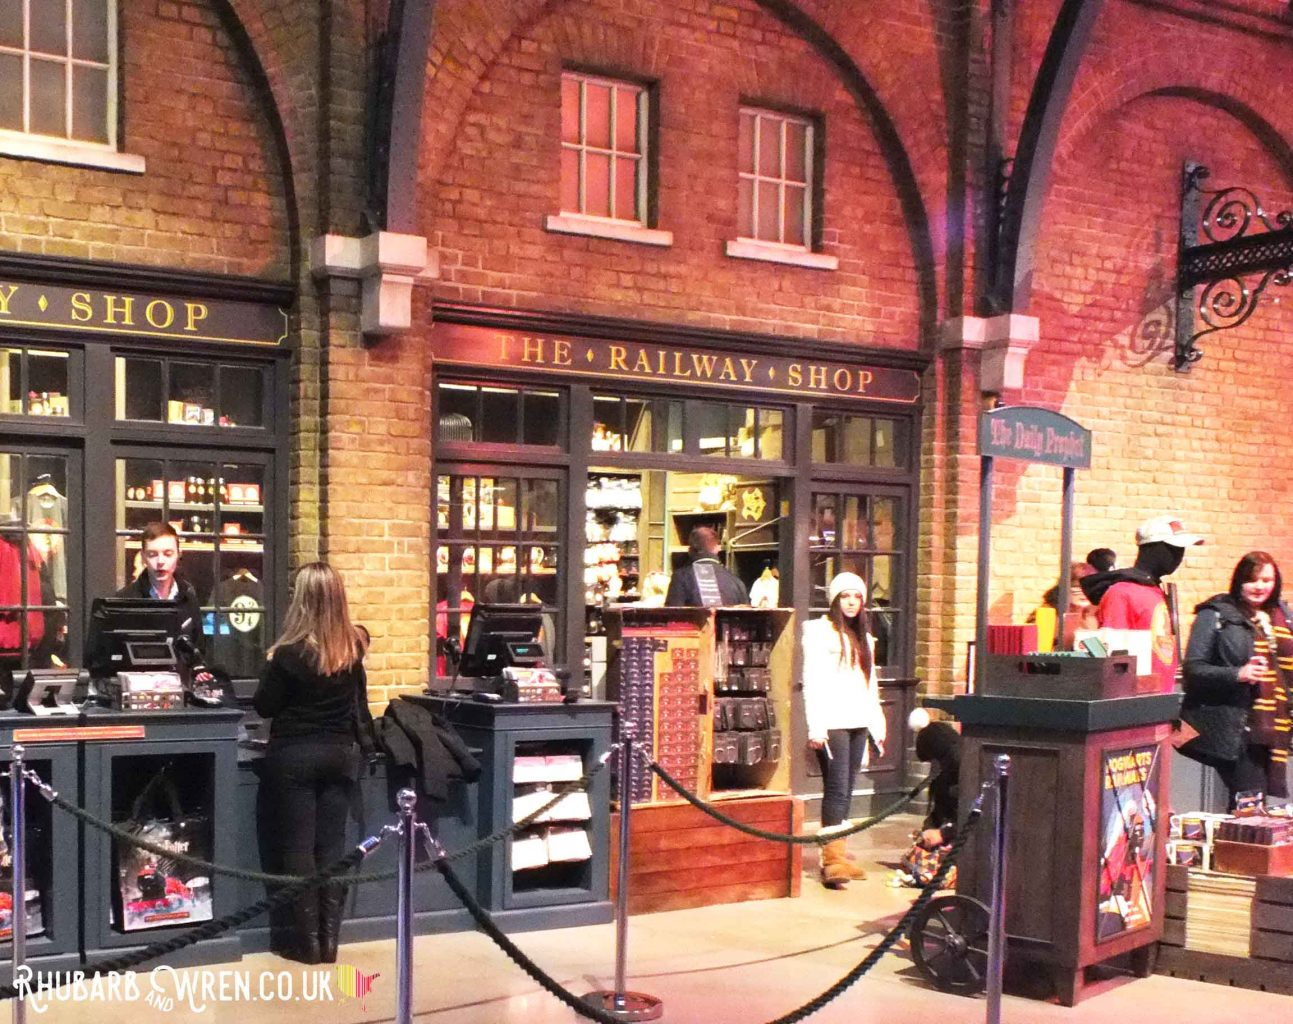 The Railway Shop at the Harry Potter studio tour